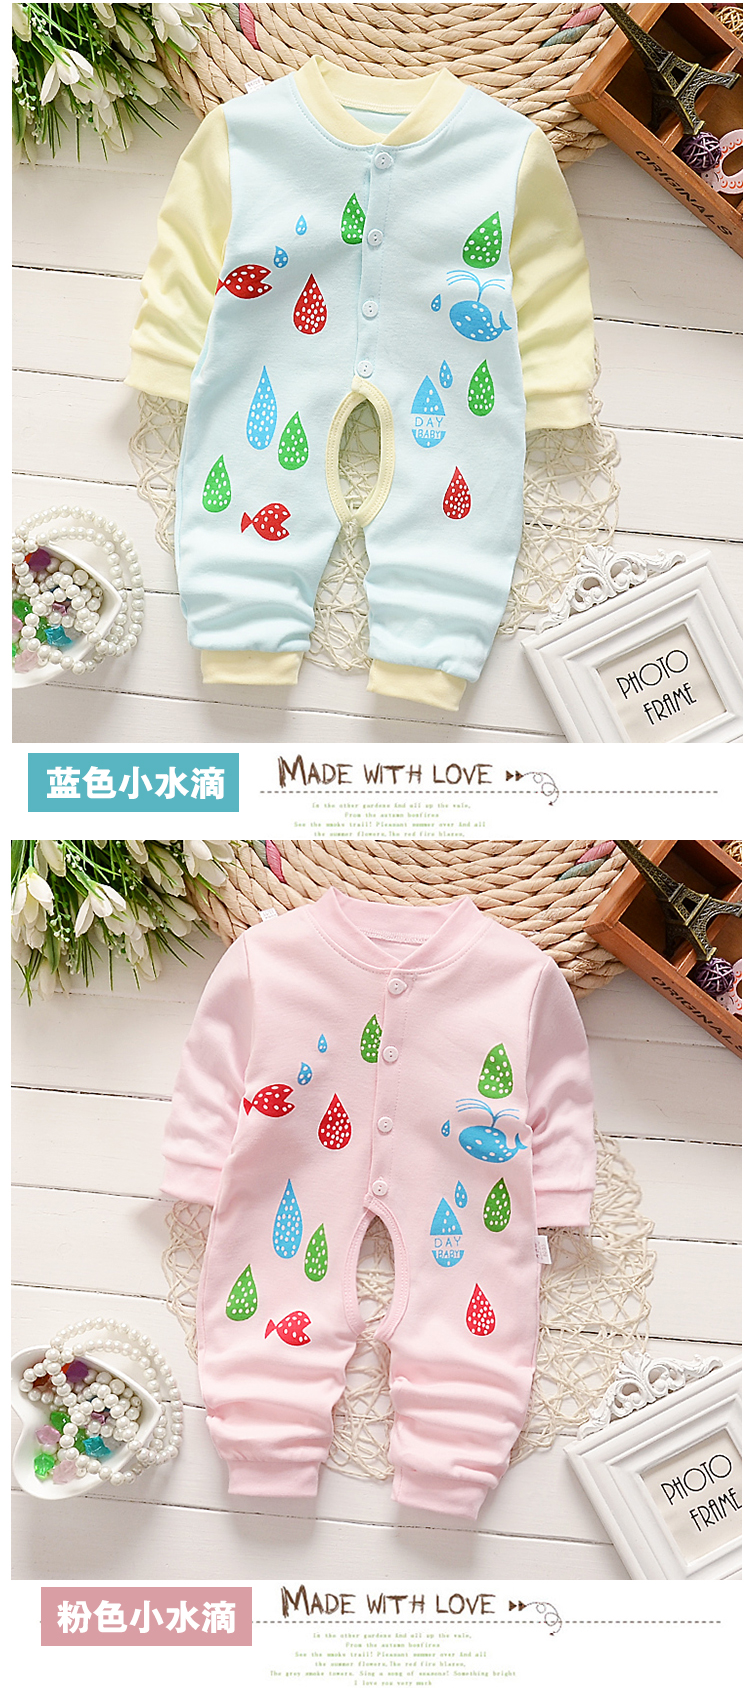 39c5bb66441f4 PMGZGLY Summer Baby Rompers Brand Baby Costumes Baby Boys Girls Clothes 3 6  9 Months Cute Infant Jumpsuit Clothing Footies. 1 2 3 4 5 8 7 6 9 10 11 12  ...